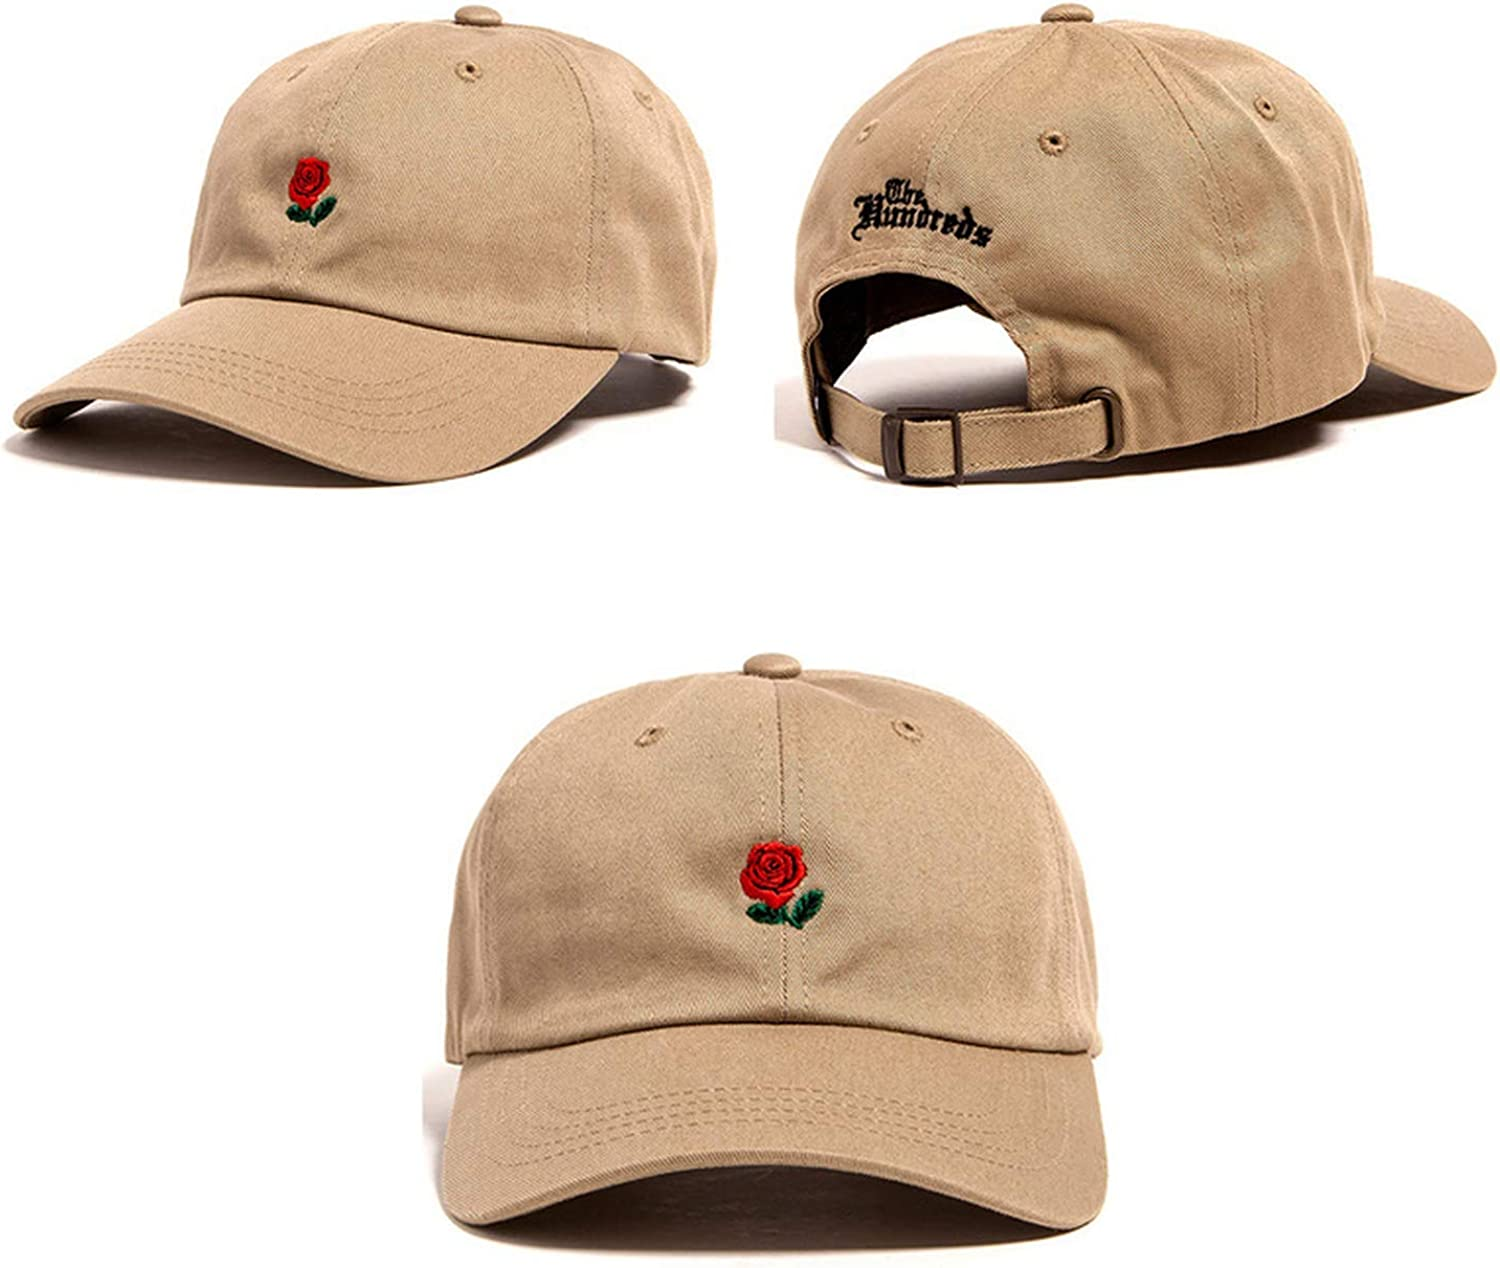 New Classic Baseball Cap Rose Hat for Women Caps Summer Sun Hat Caps Sport Cap Casual Man Baseball Hat